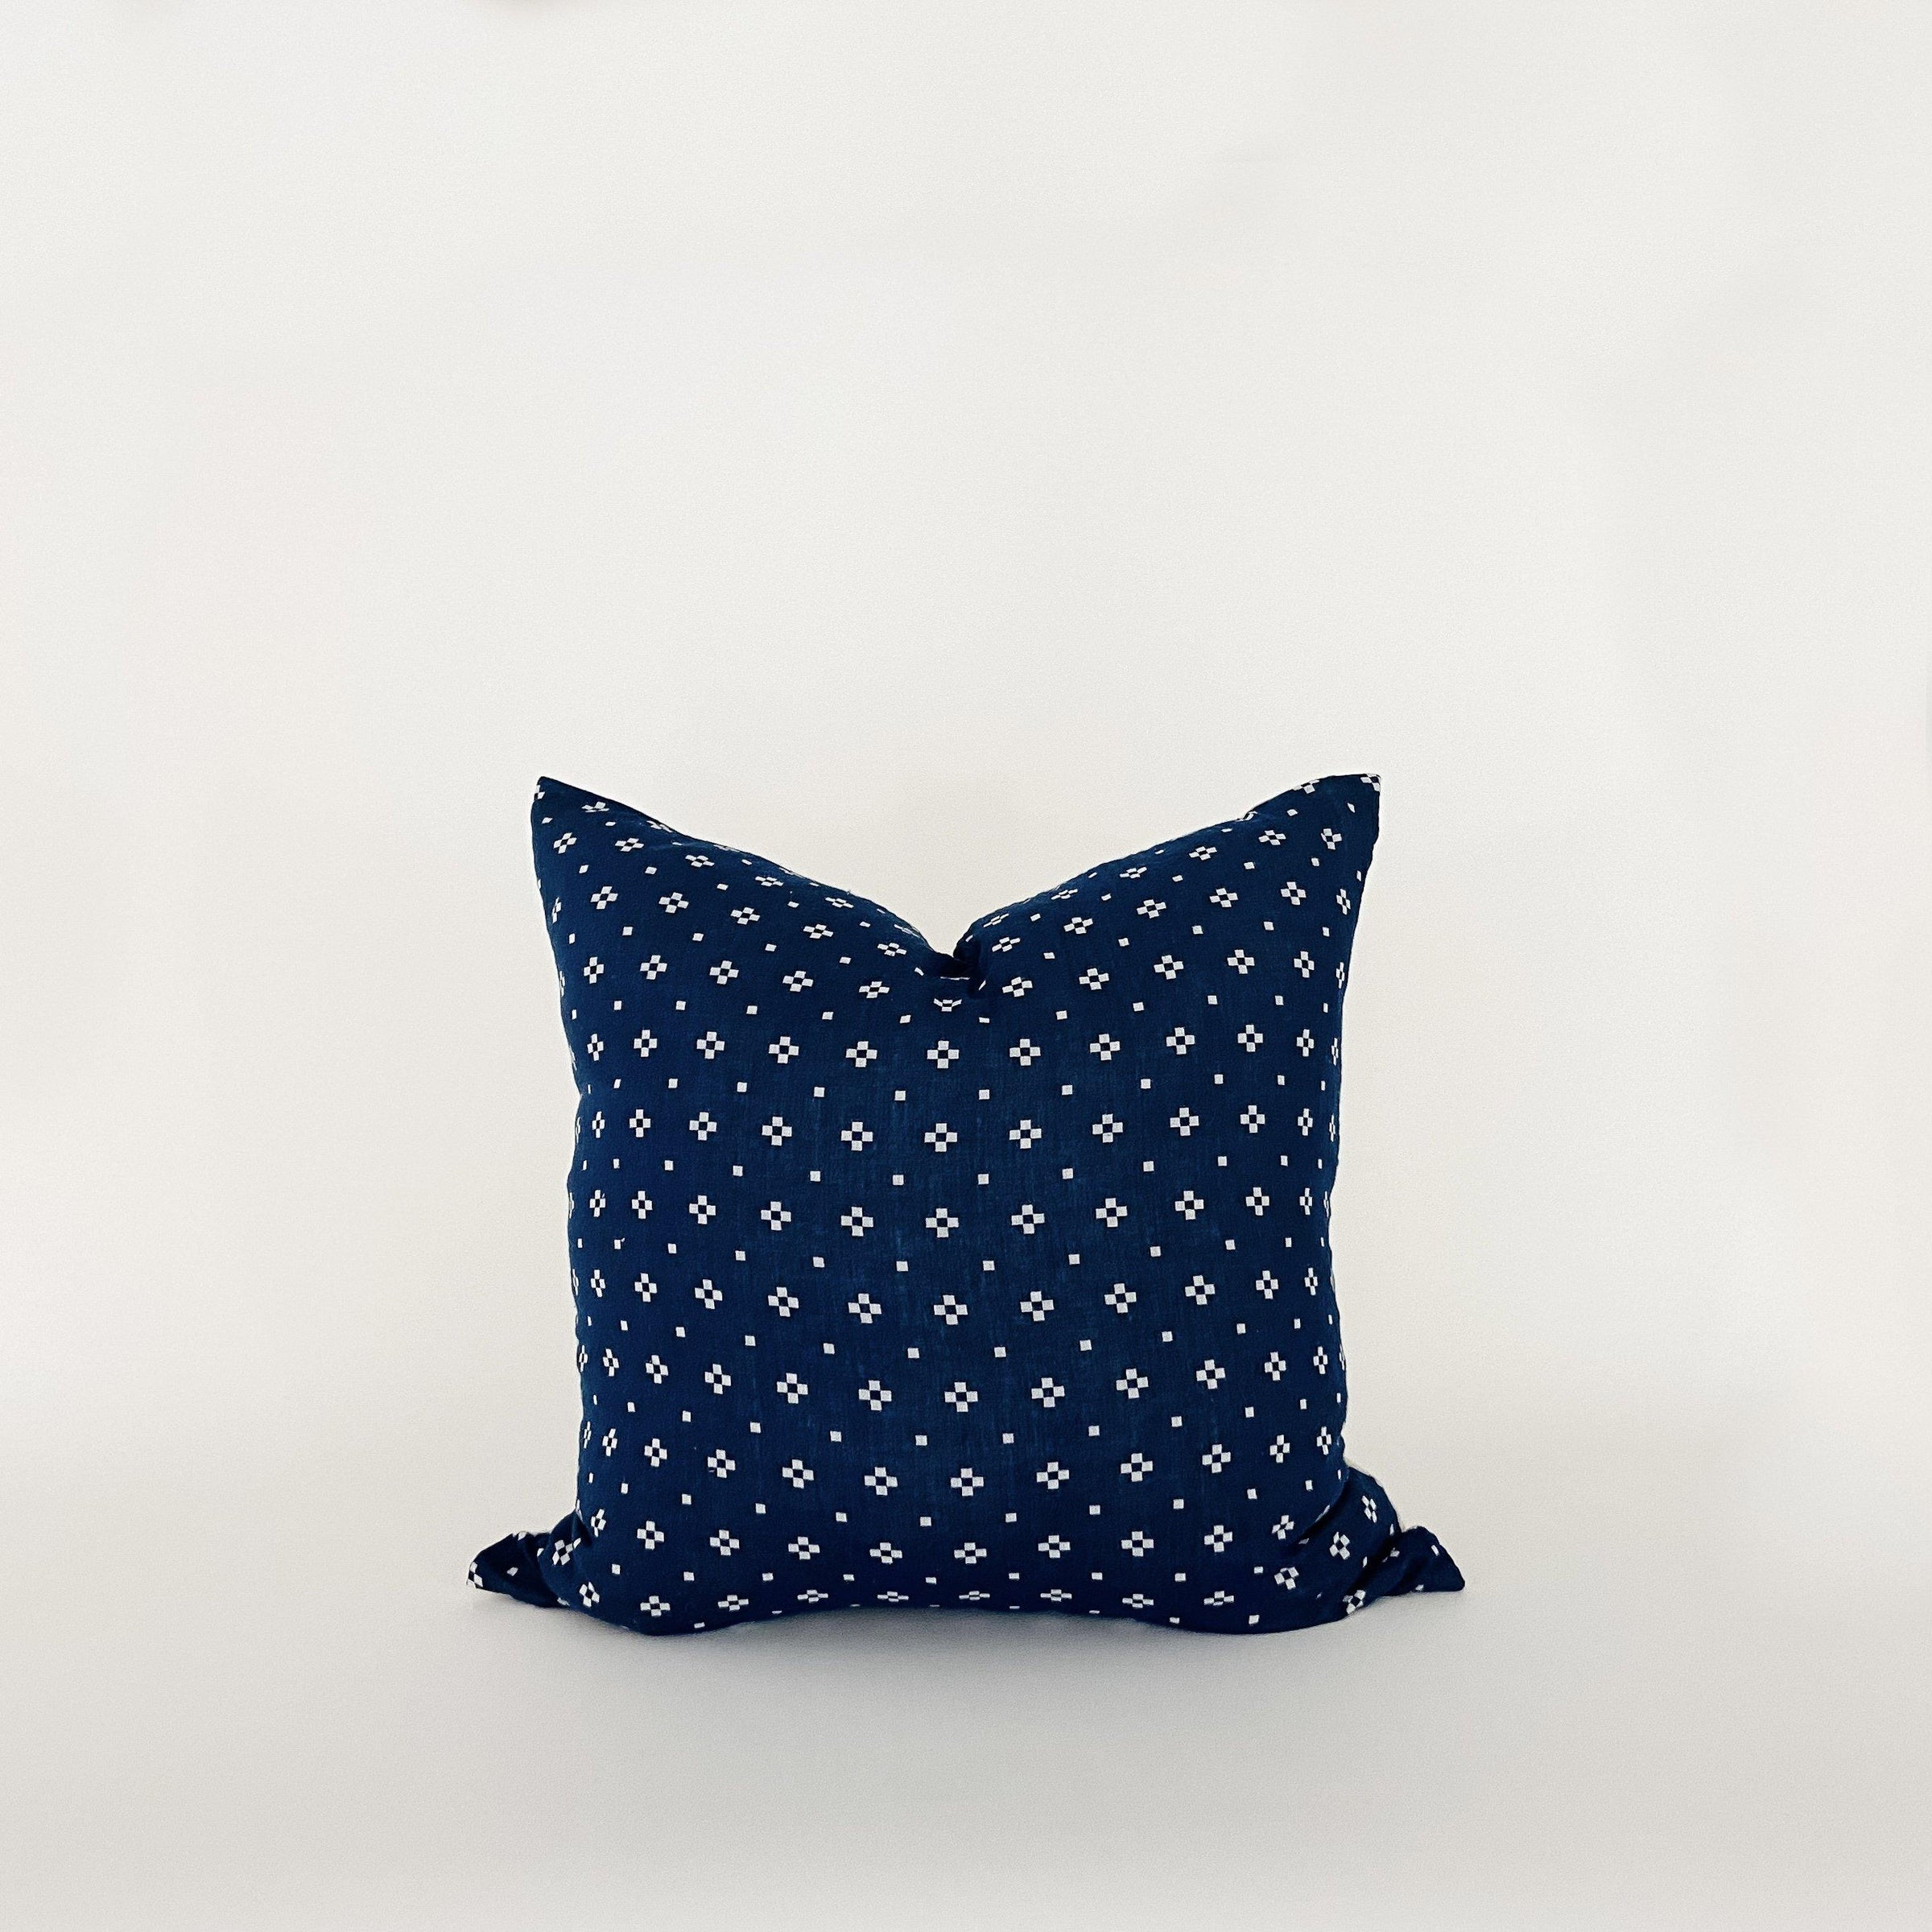 Diamond Indigo & White Pillow - KM Home